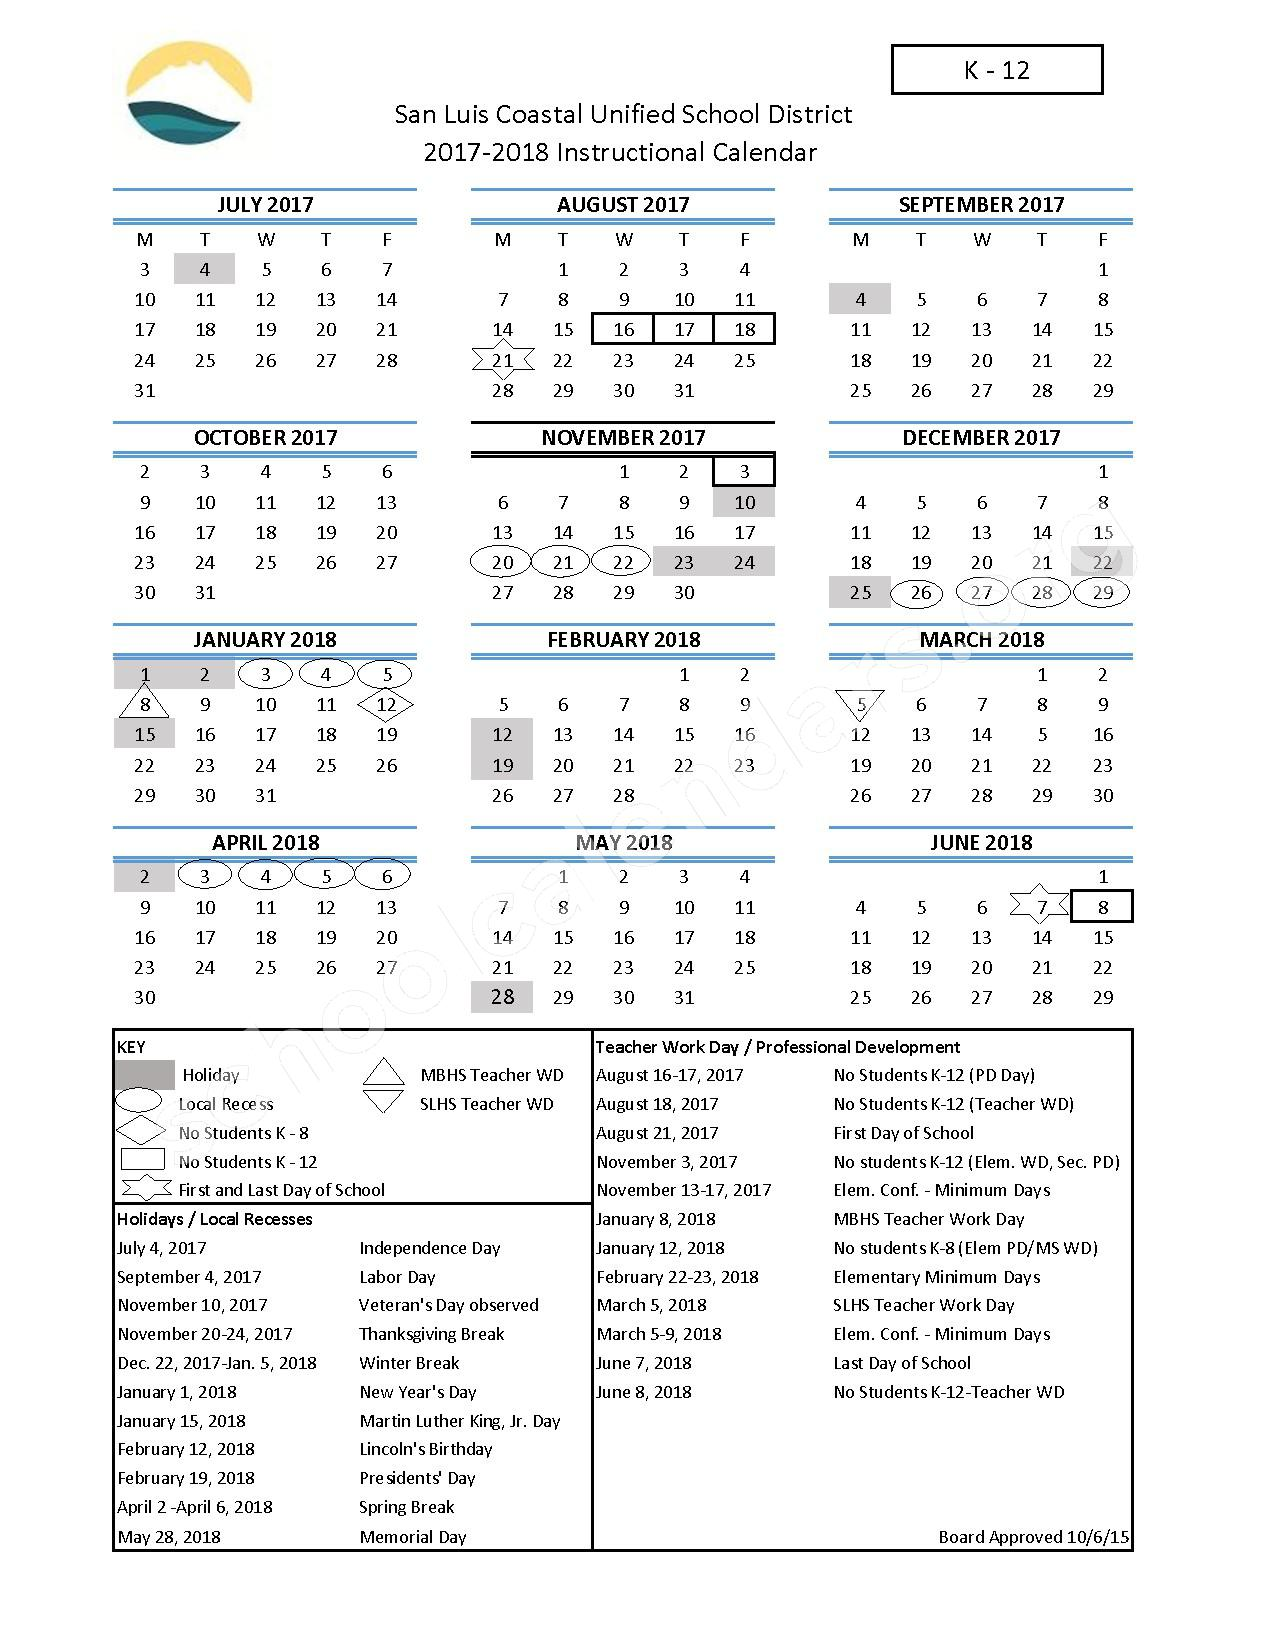 2017 - 2018 District Calendar (K-12) – San Luis Coastal Unified School District – page 1